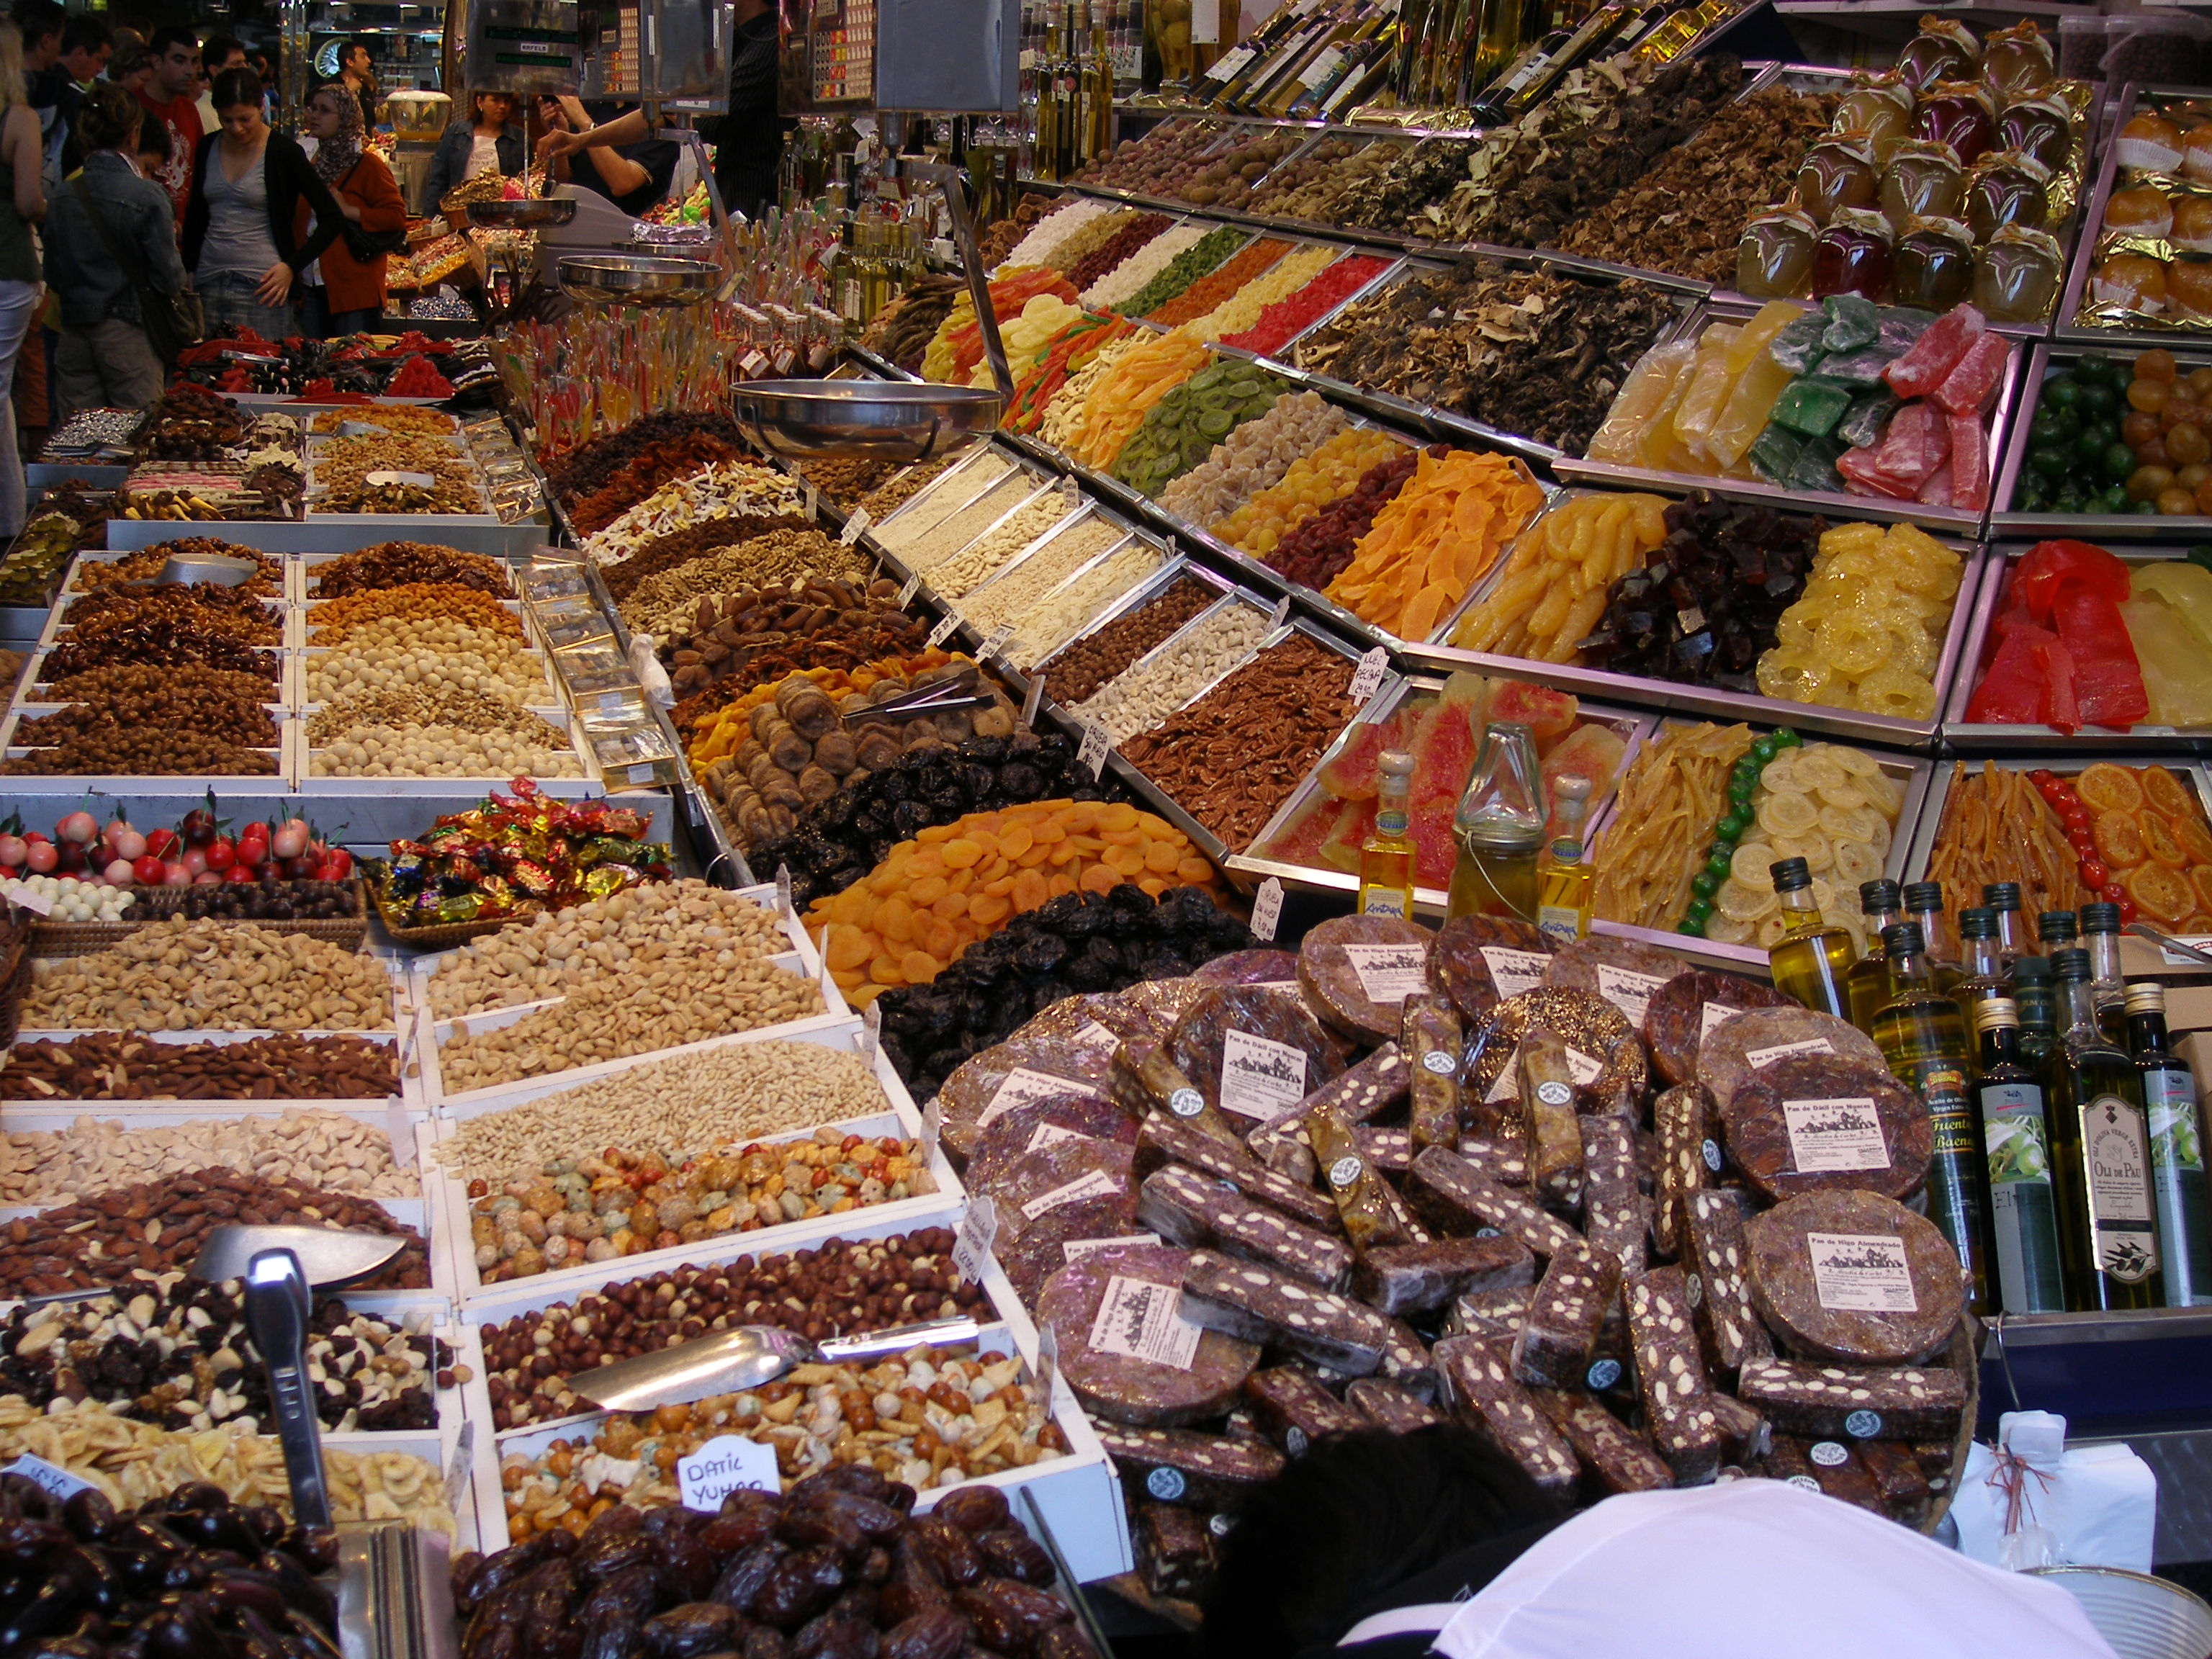 La Boqueria Market - Best Hotels in the Area and Gourmet Food Tour